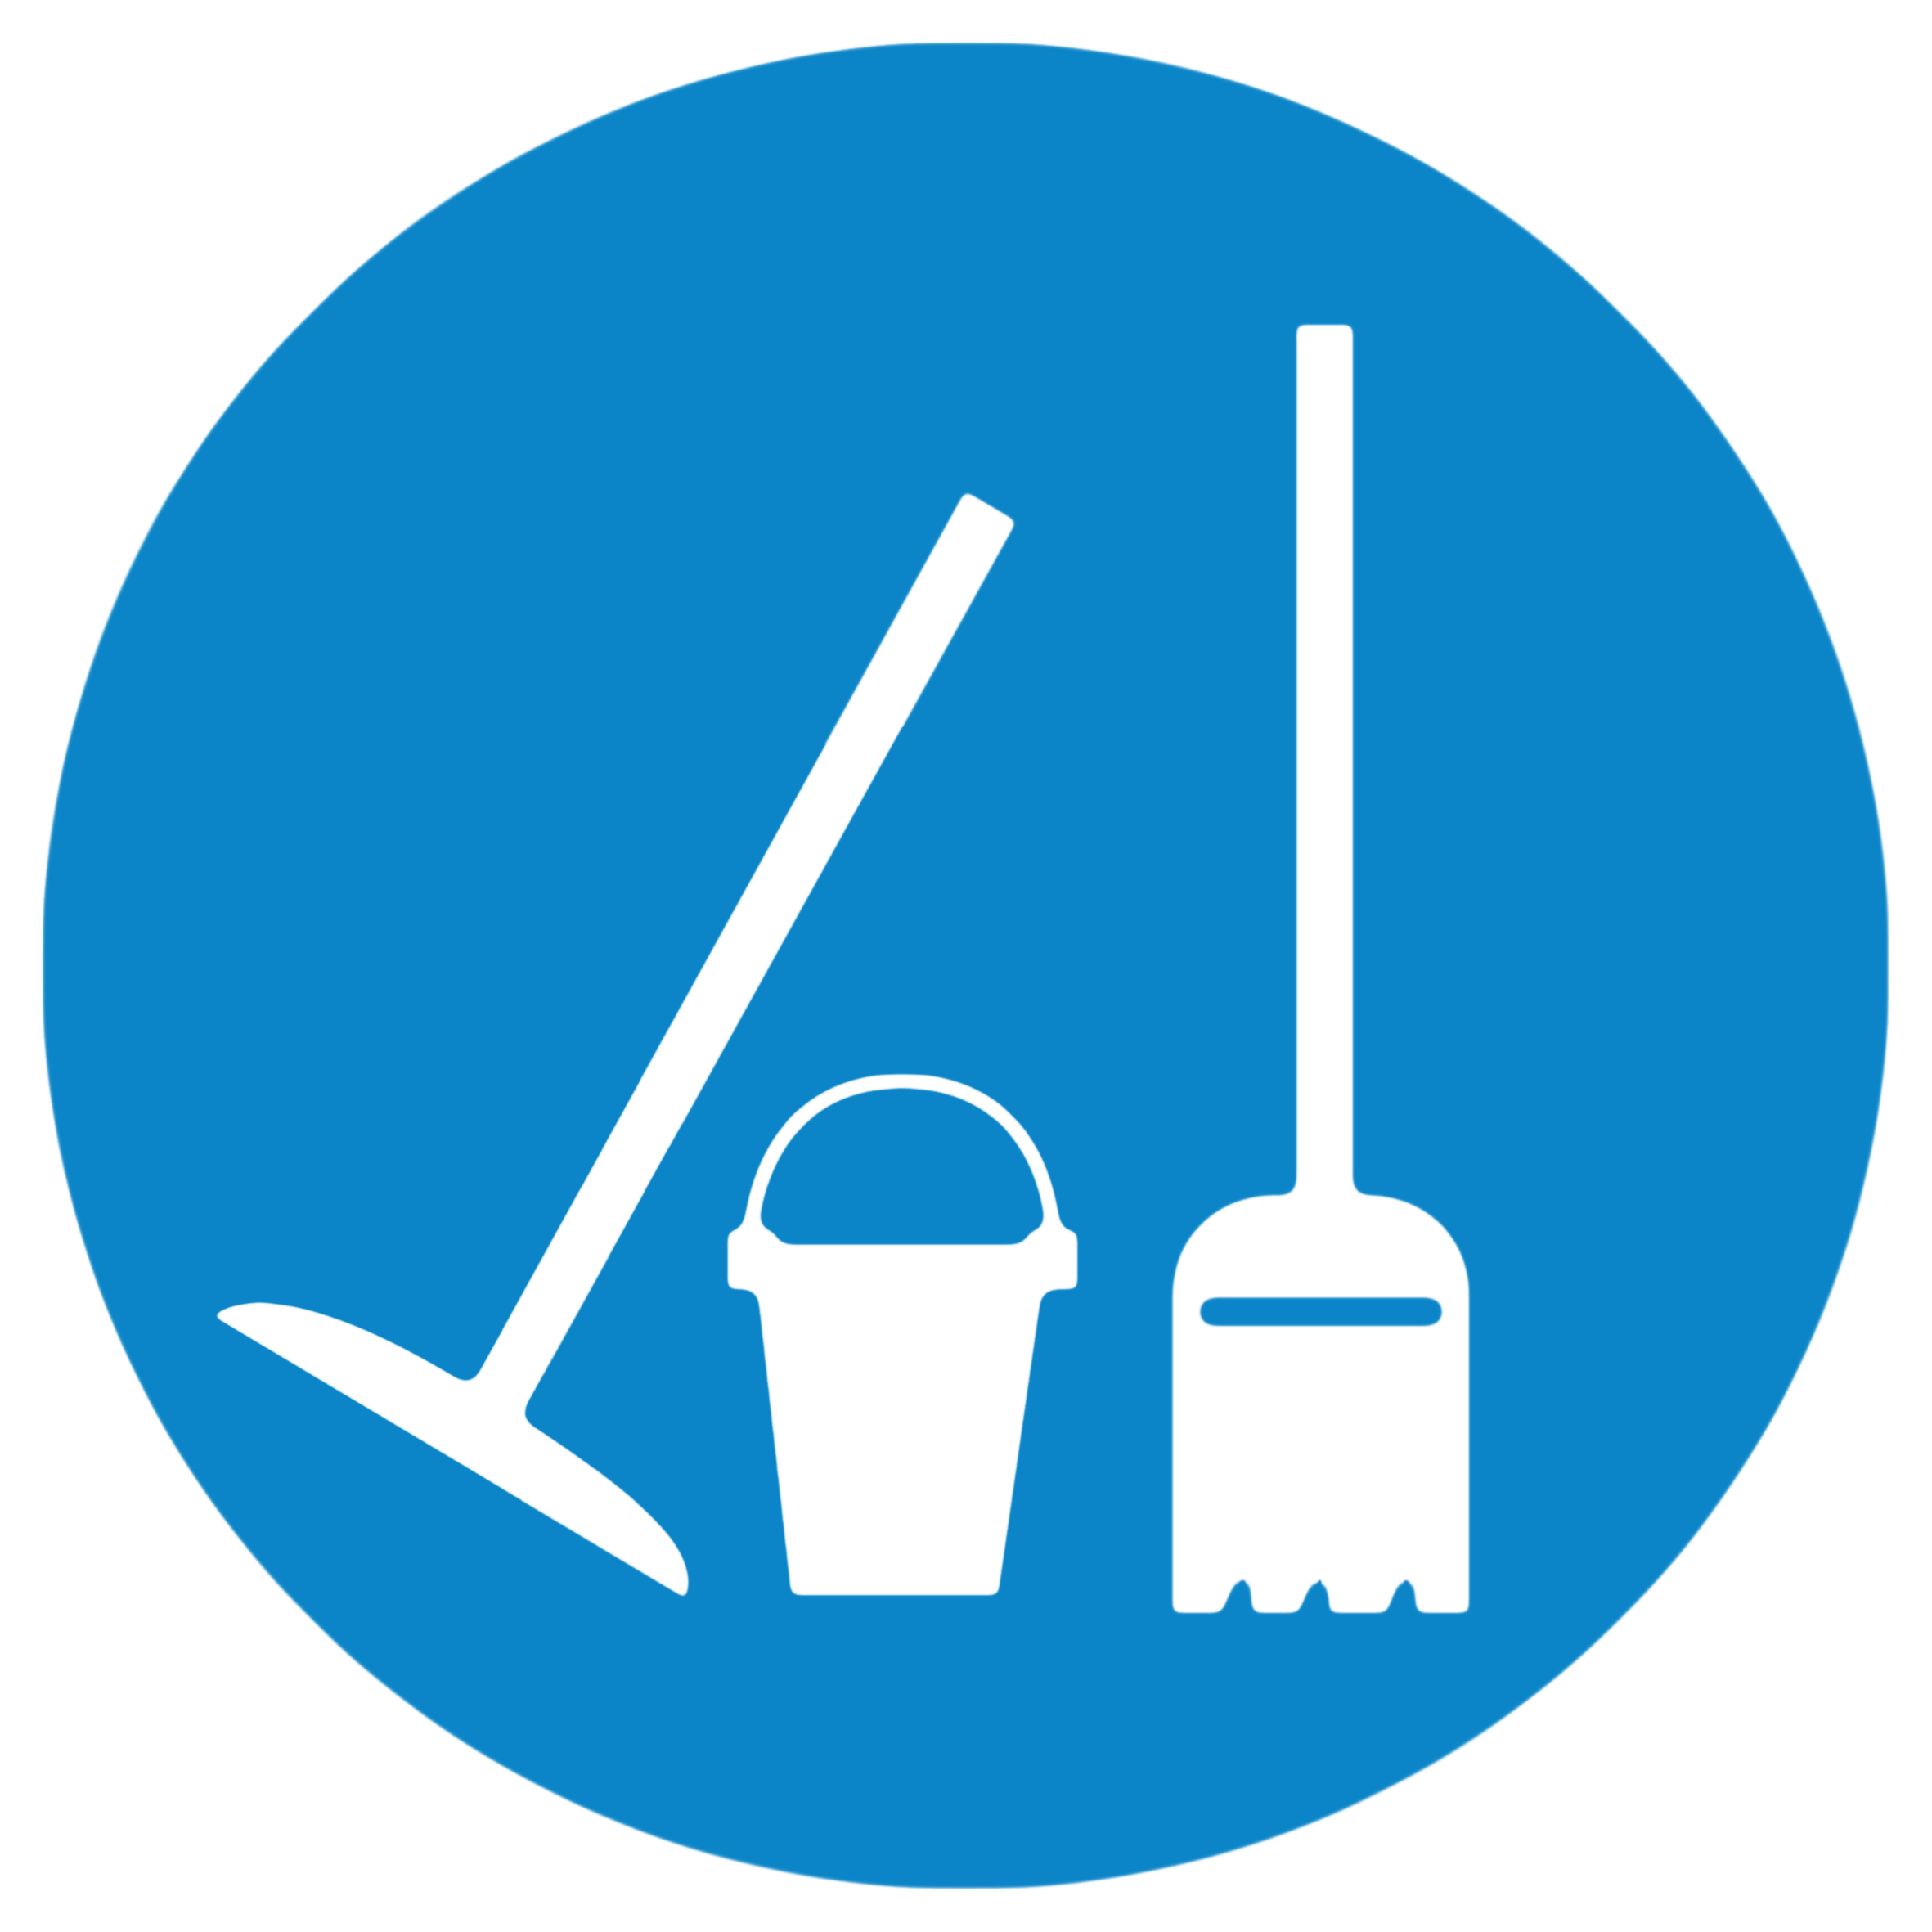 Logo of the data cleaning service - represent a bucket, broom and shovel